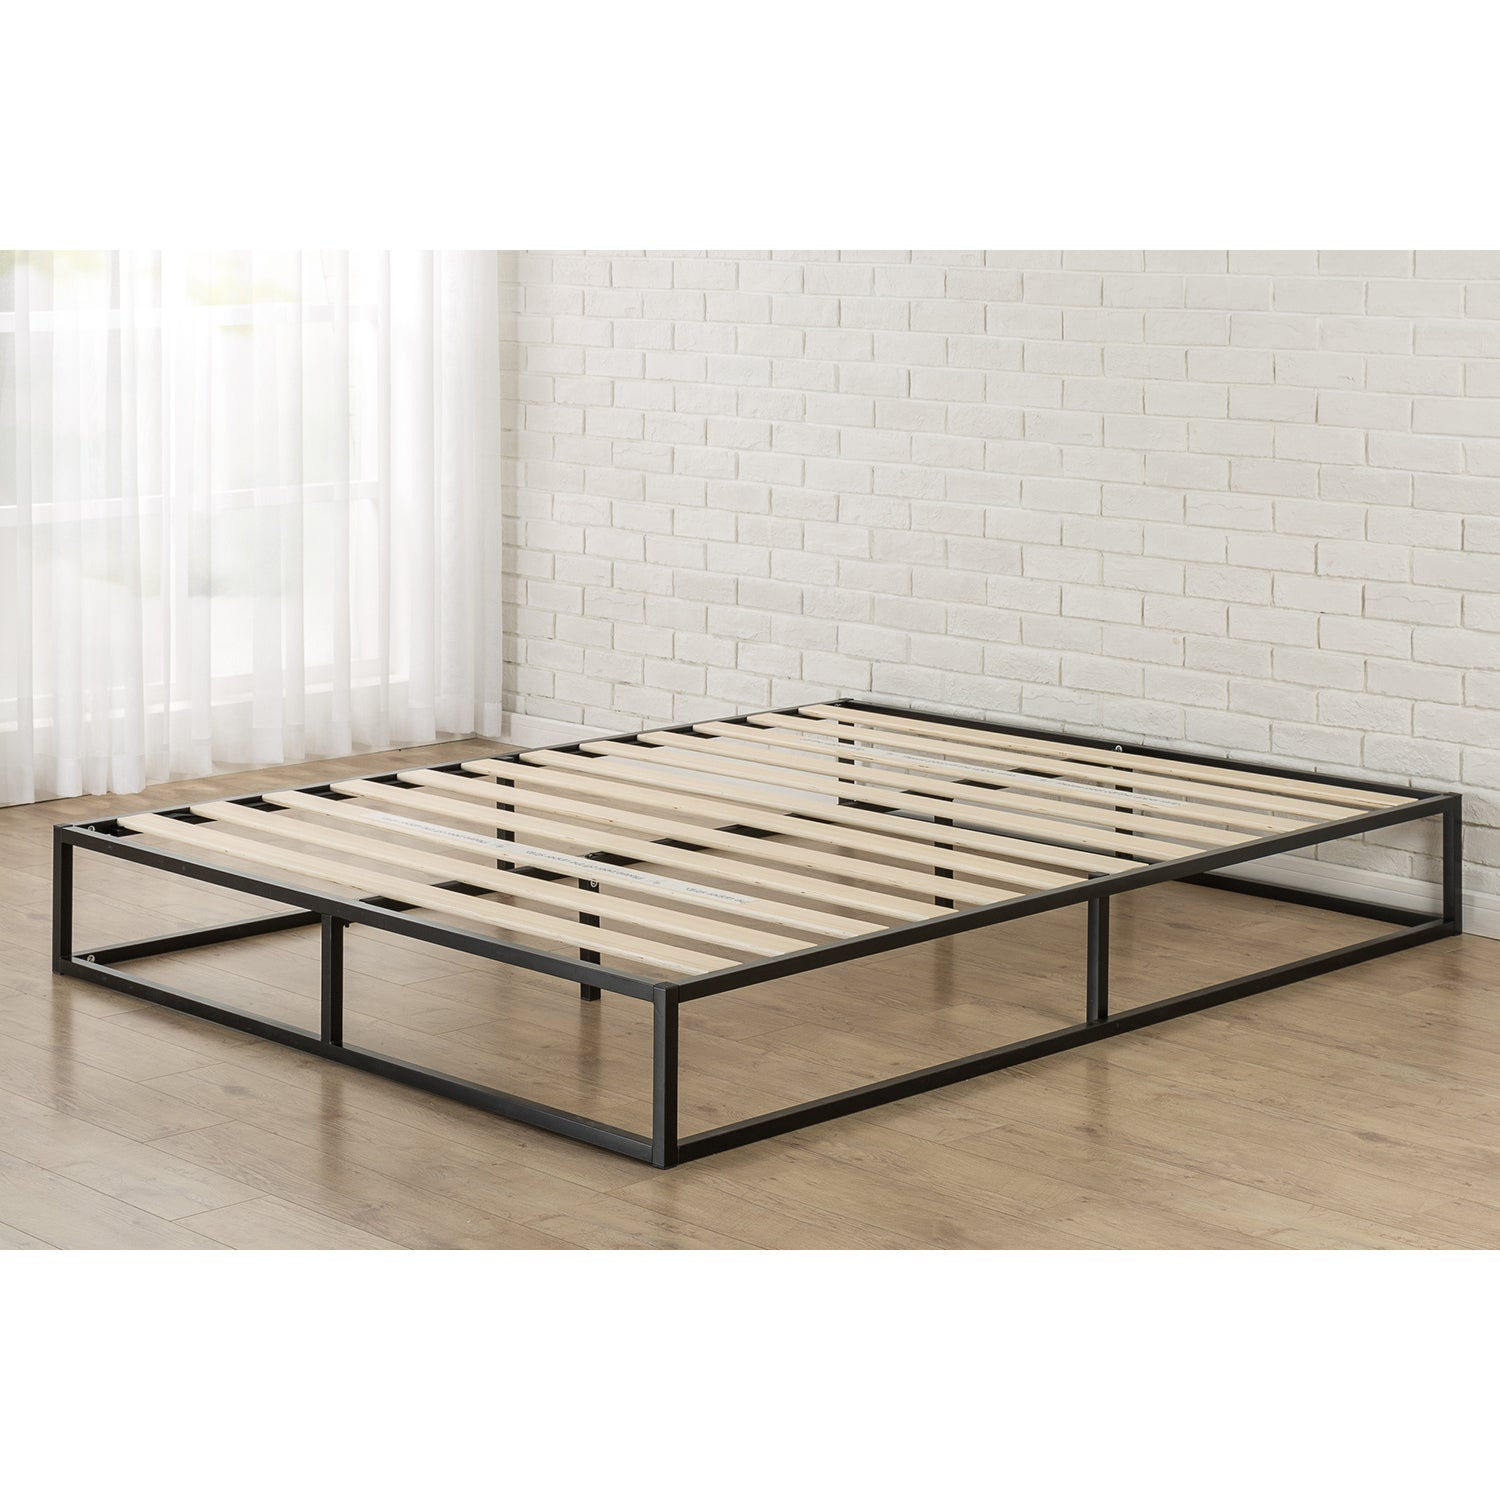 premium selection 58b5c f5b10 Buy Bed Frames Online at Overstock | Our Best Bedroom ...